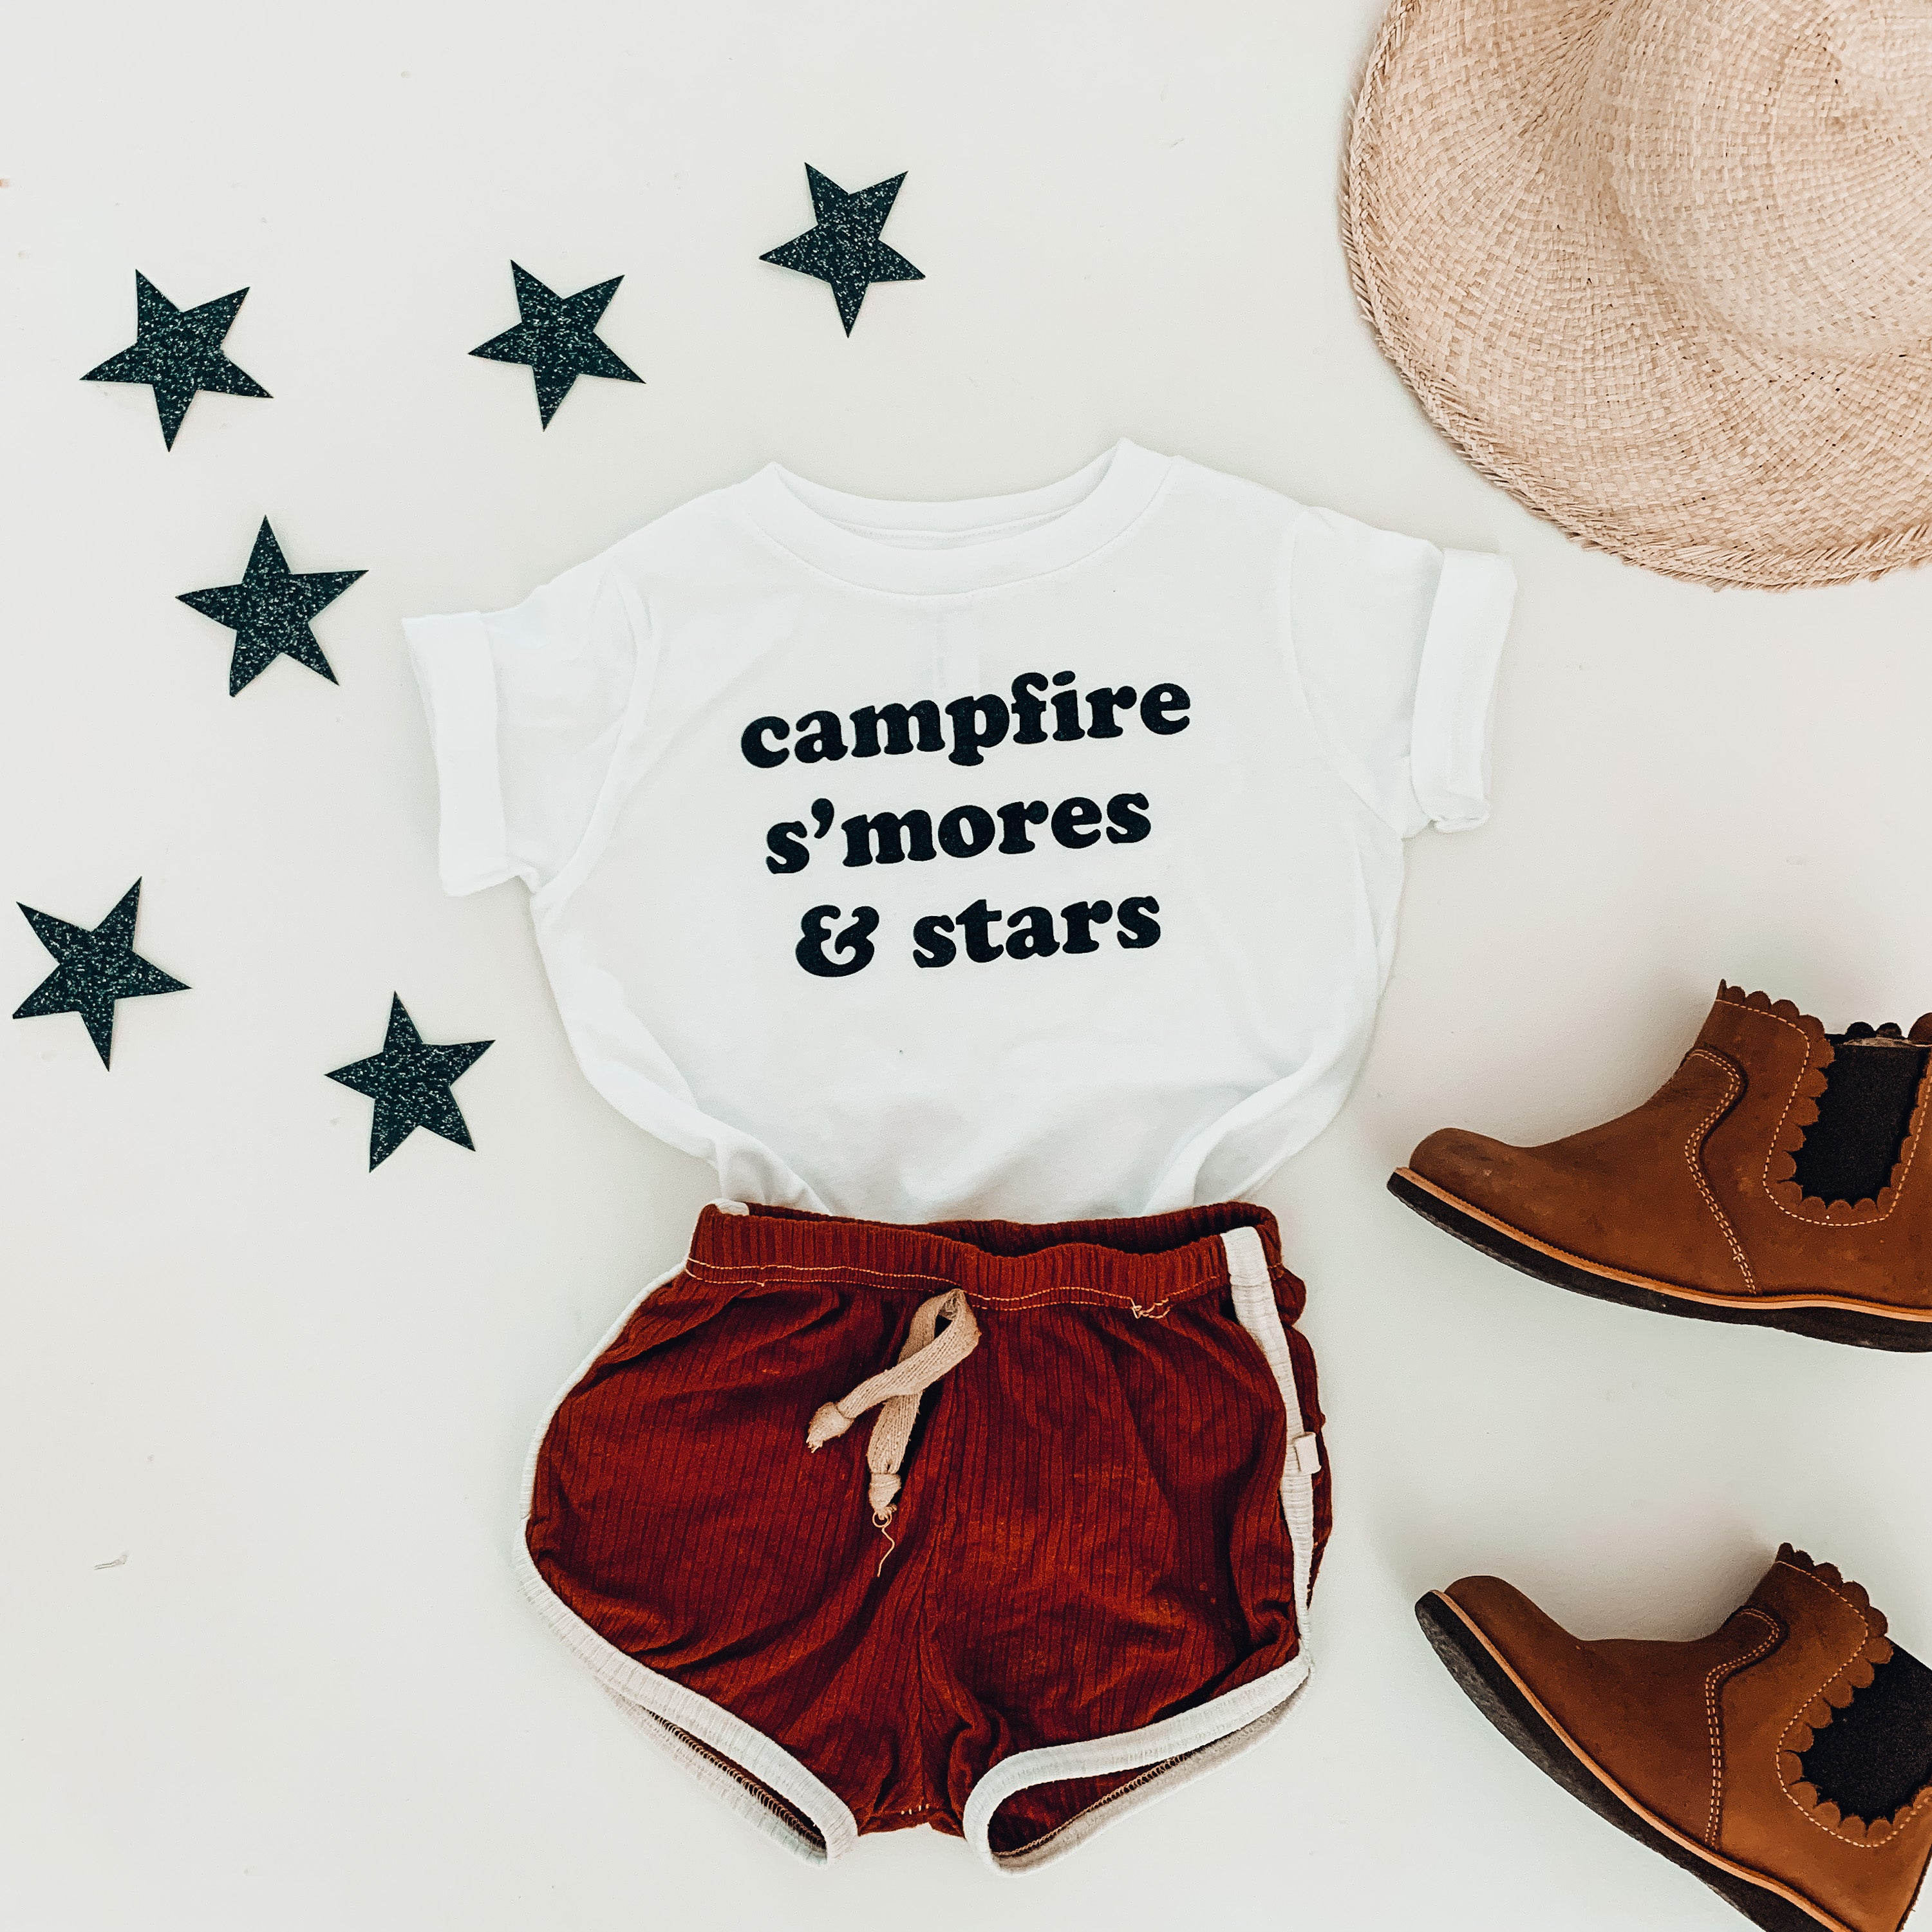 CAMPFIRE S'MORES & STARS  - Onesie & Toddler & Youth Tee